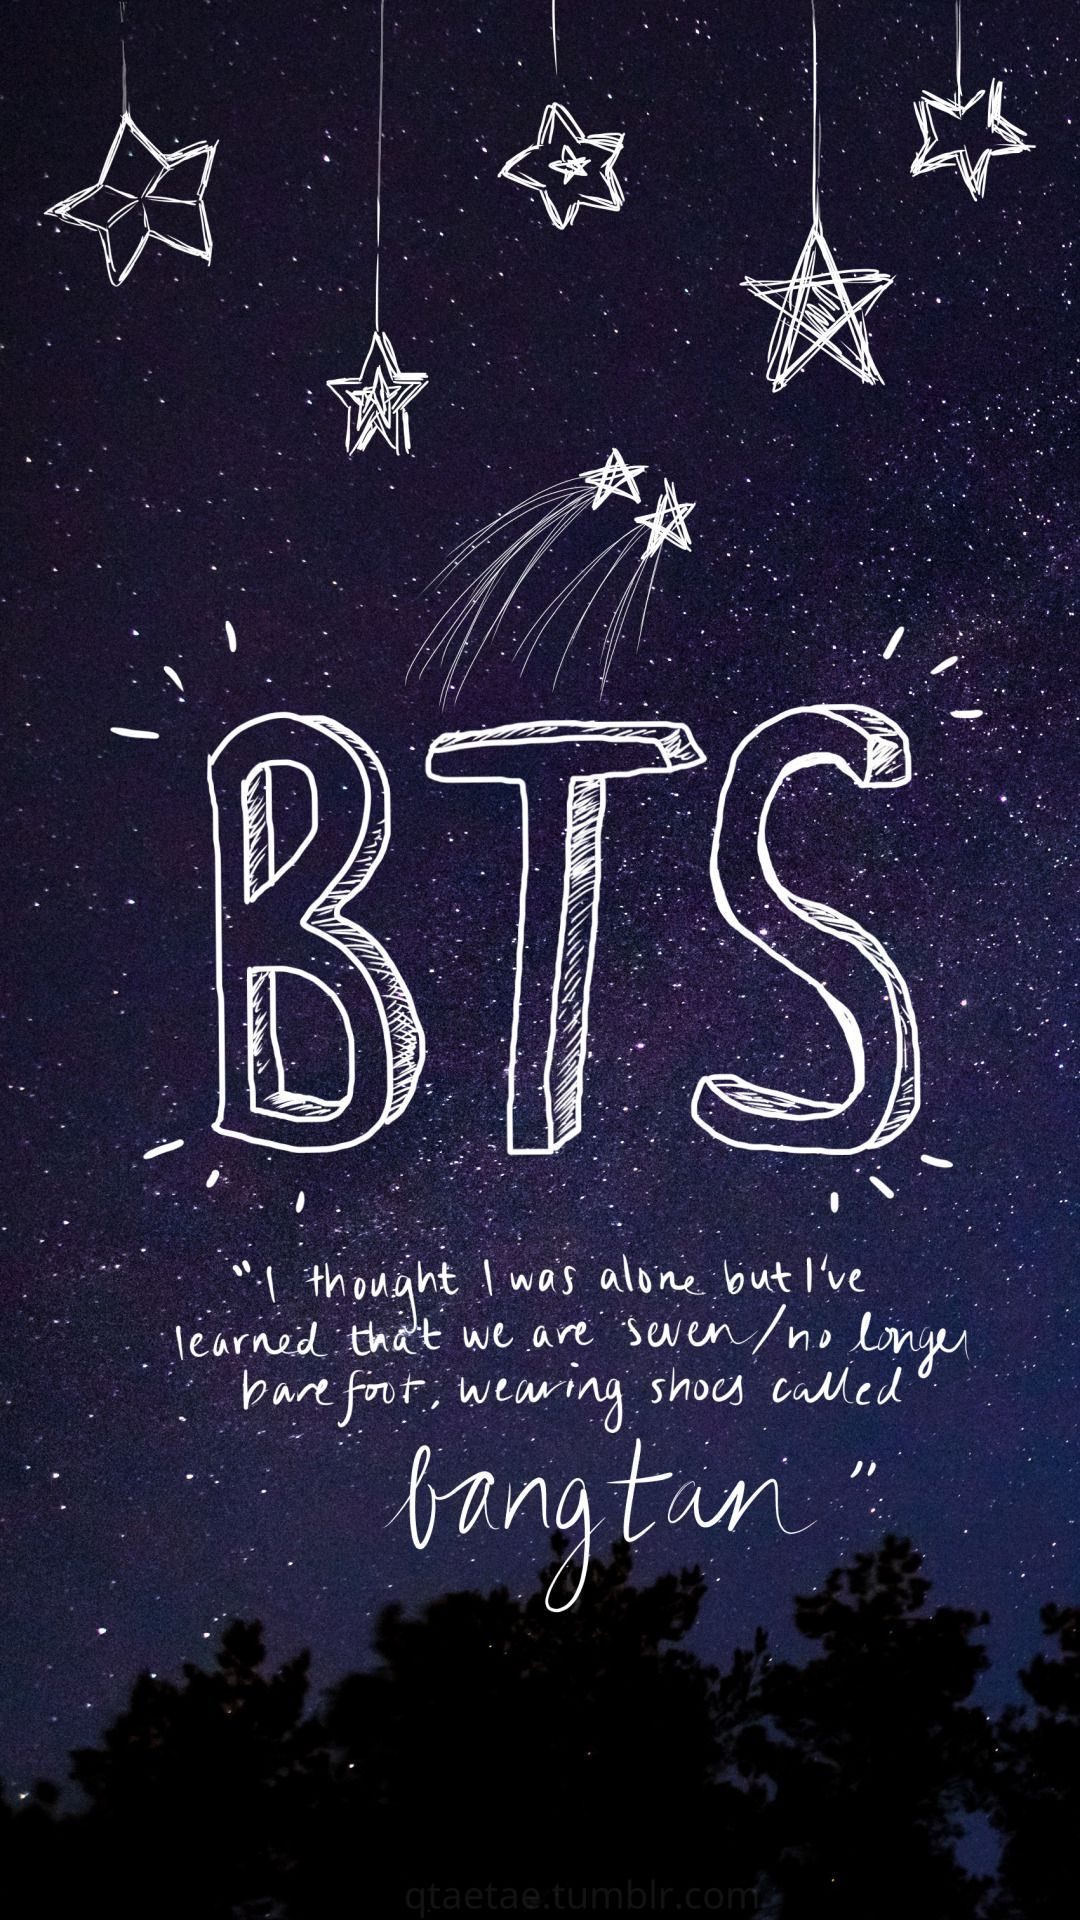 bts wallpapers ; snoowy_ 2016 #random #Random #amreading #books #wattpad